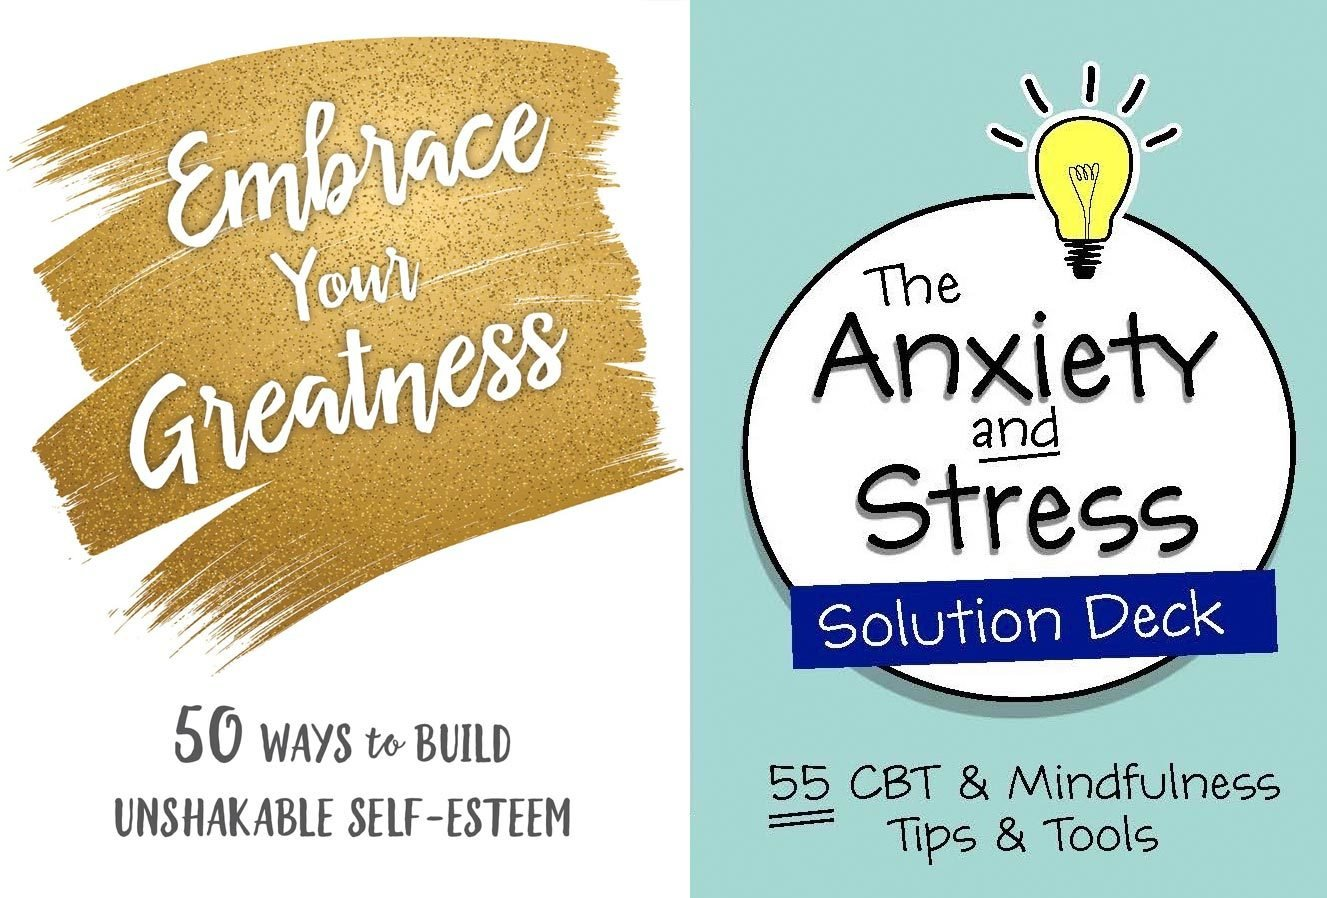 Embrace Your Greatness and The Anxiety and Stress Solution Deck